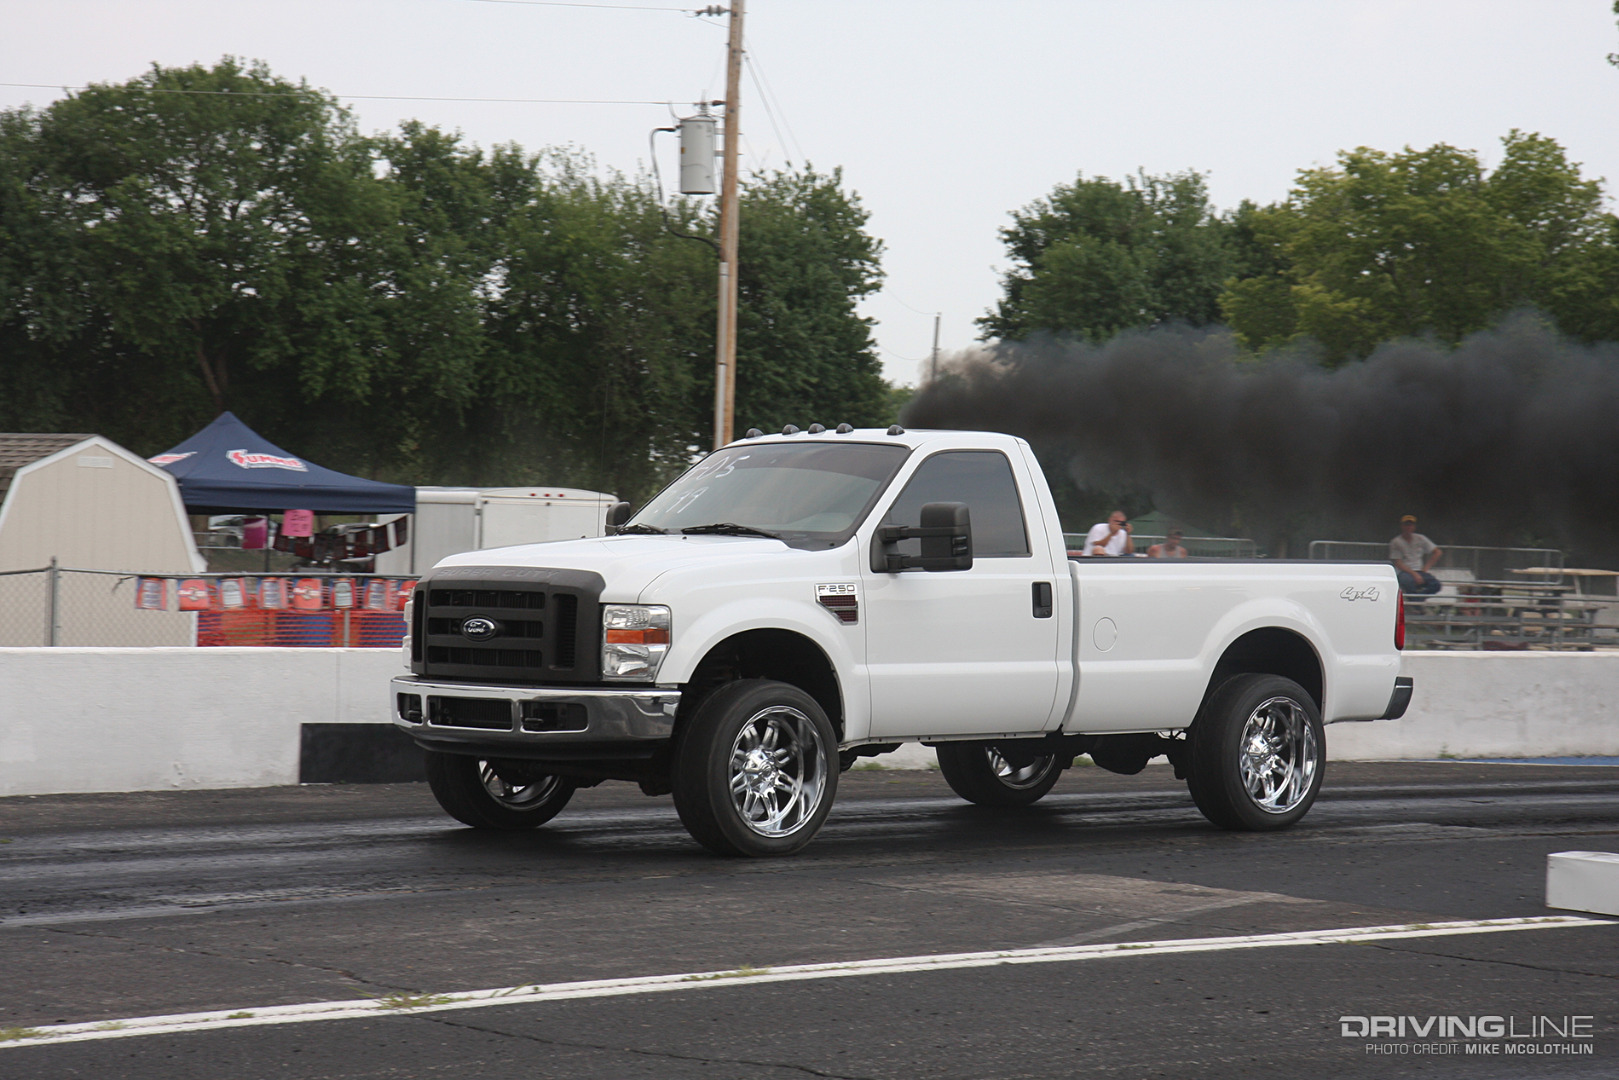 Ford F Lifted Pickup Truck For Sale additionally Z B Ford F Super Duty Bdrop Pitmarm besides Ford Pulling Truck Gas V Fs additionally F Diesel Clean X For Sale further Internatinal Pickup Northrup Fab Trophy Rat. on ford diesel mud trucks